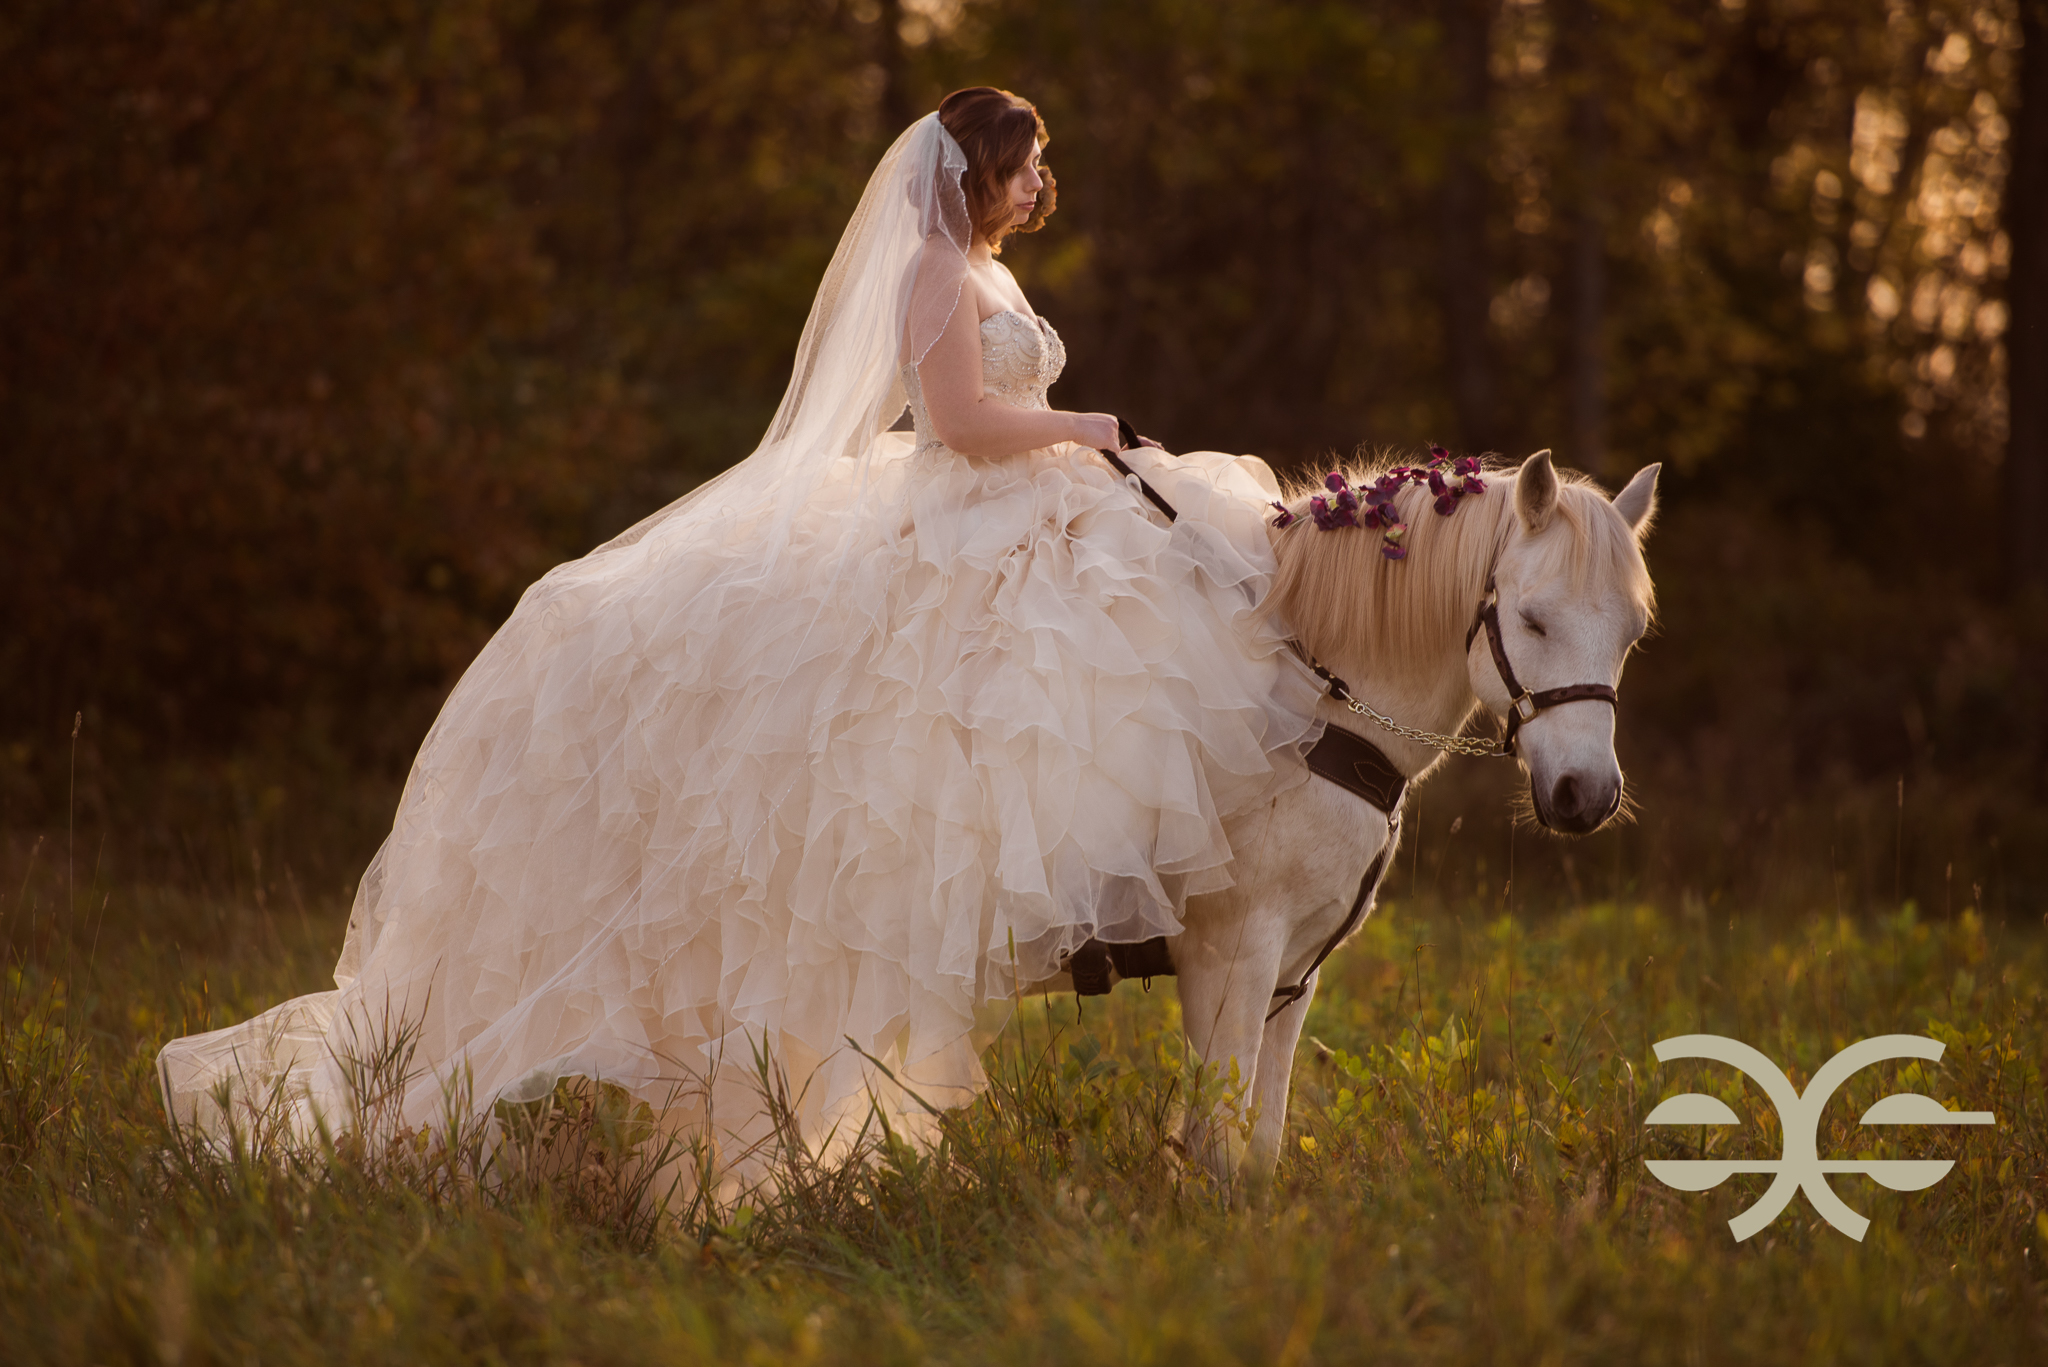 A bride on a horse in Buffalo, NY